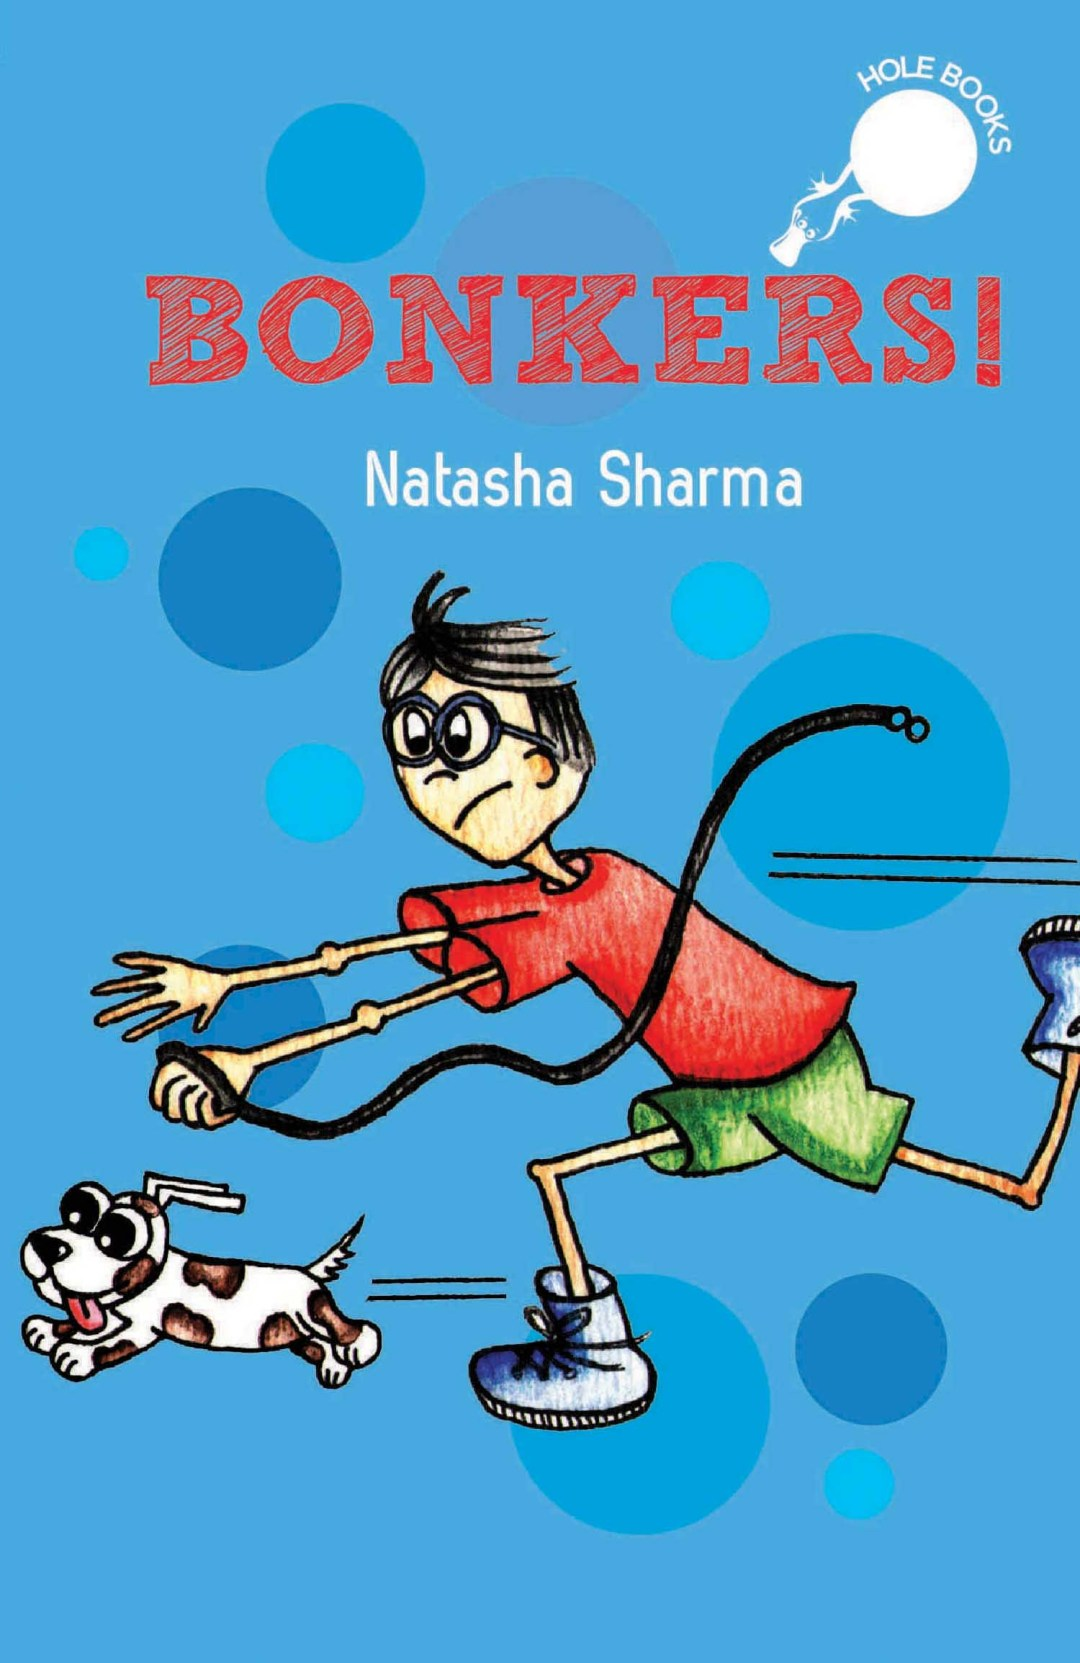 Bonkers hole book Natasha Sharma